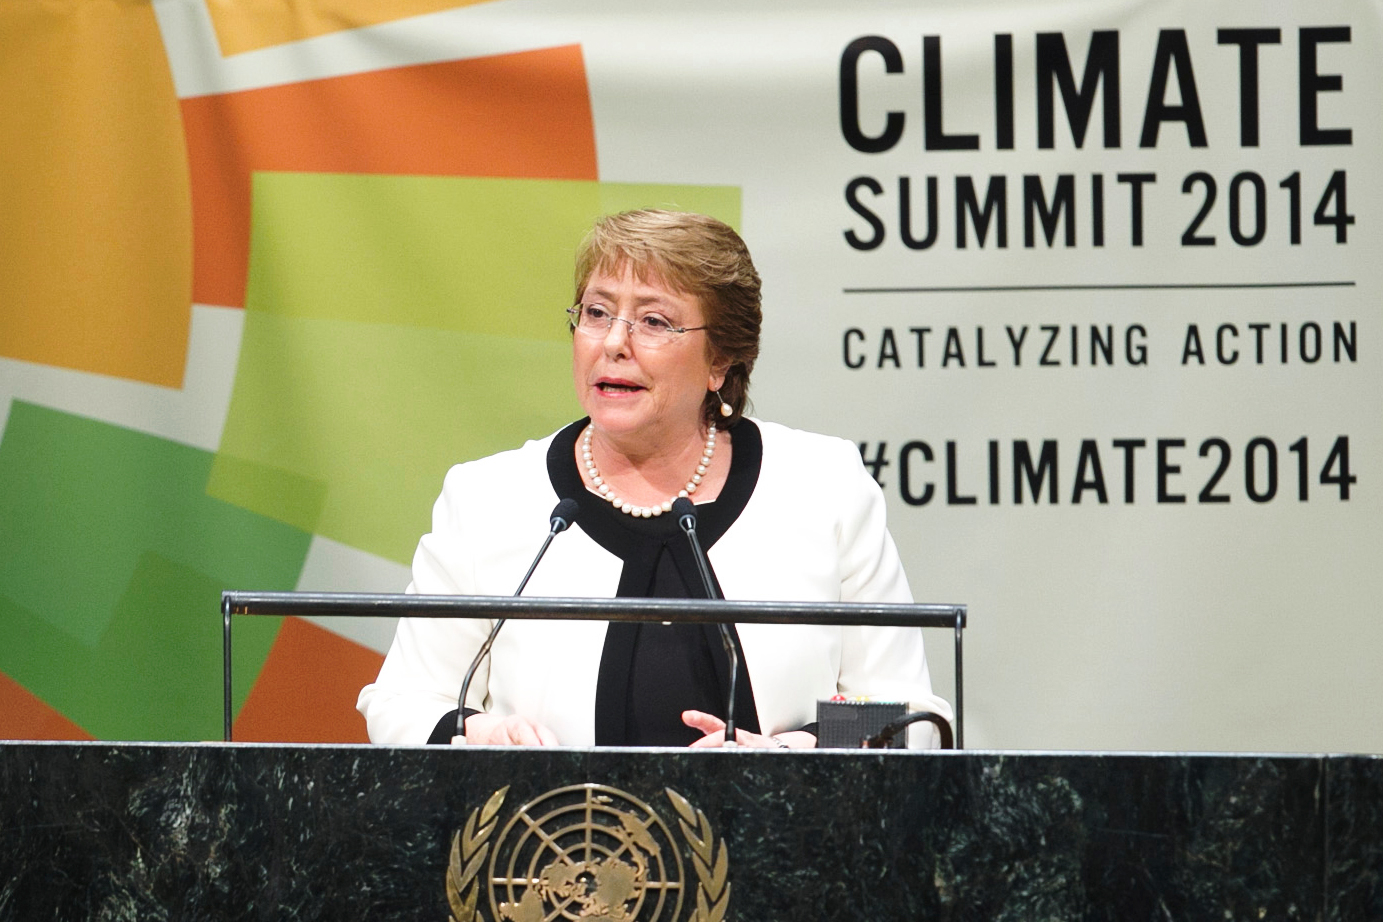 Michelle Bachelet is at a podium delivering a speech at the Climate Summit of 2014.